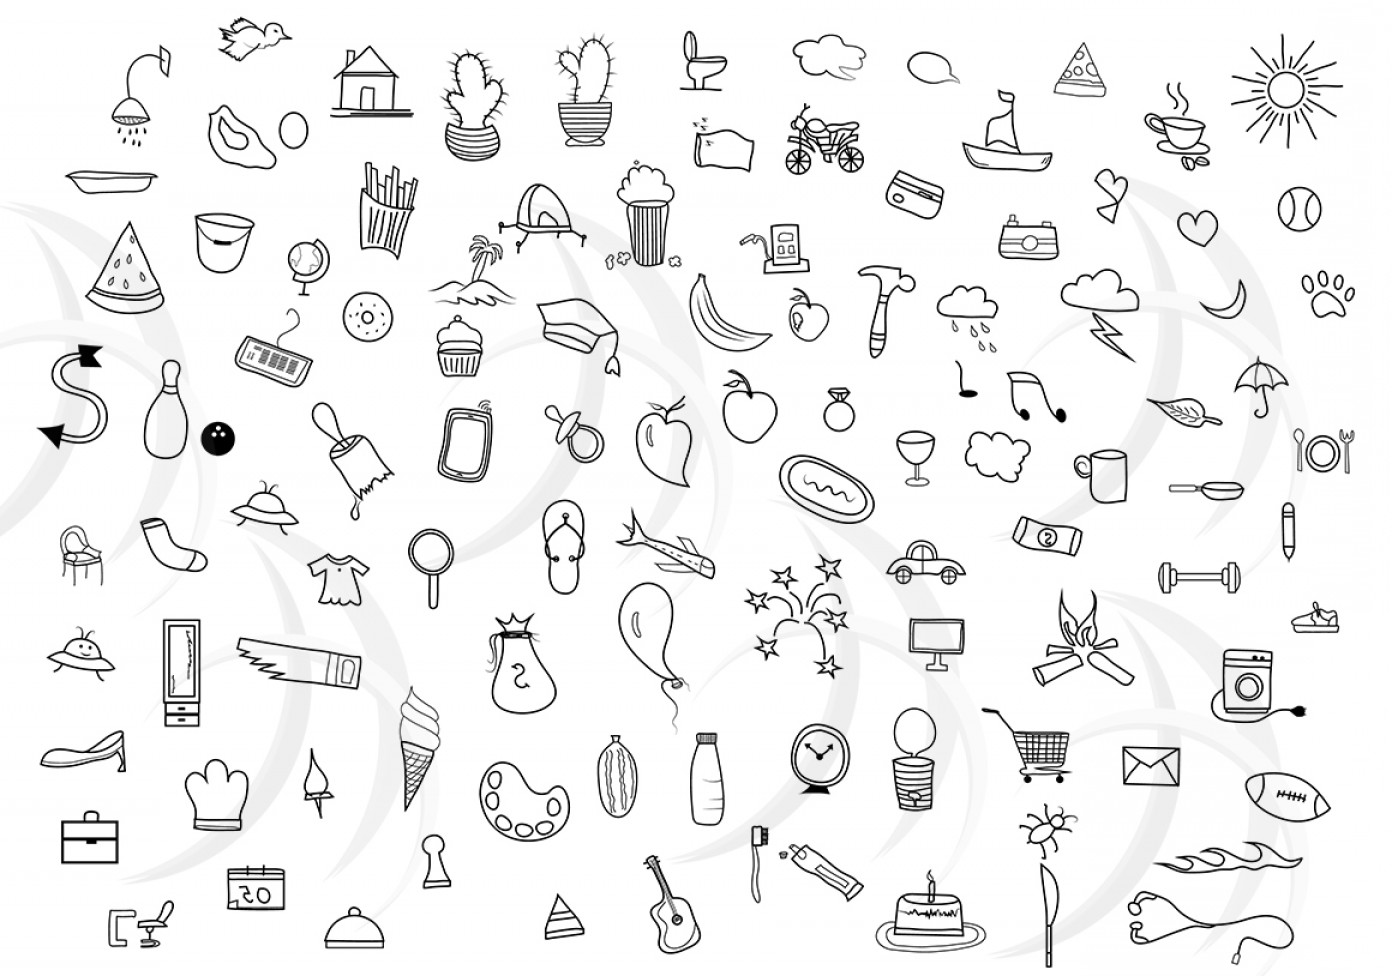 Hand drawn doodles clipart banner library Doodle Hand Drawn Vector Doodle Clipart Clip Art Bundle Everyday ... banner library